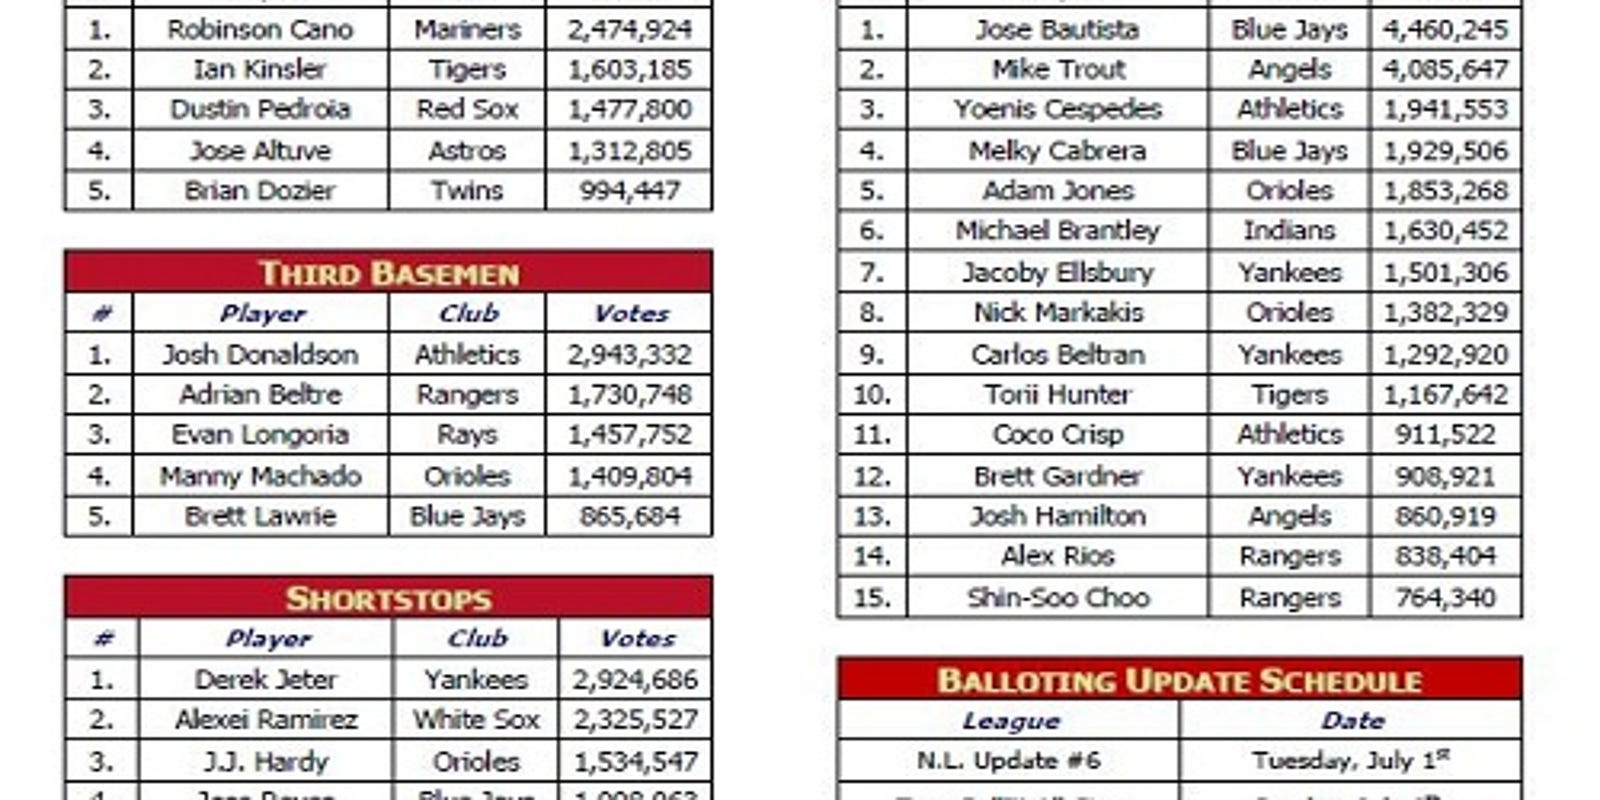 Jeter on track for ninth all-star fan election